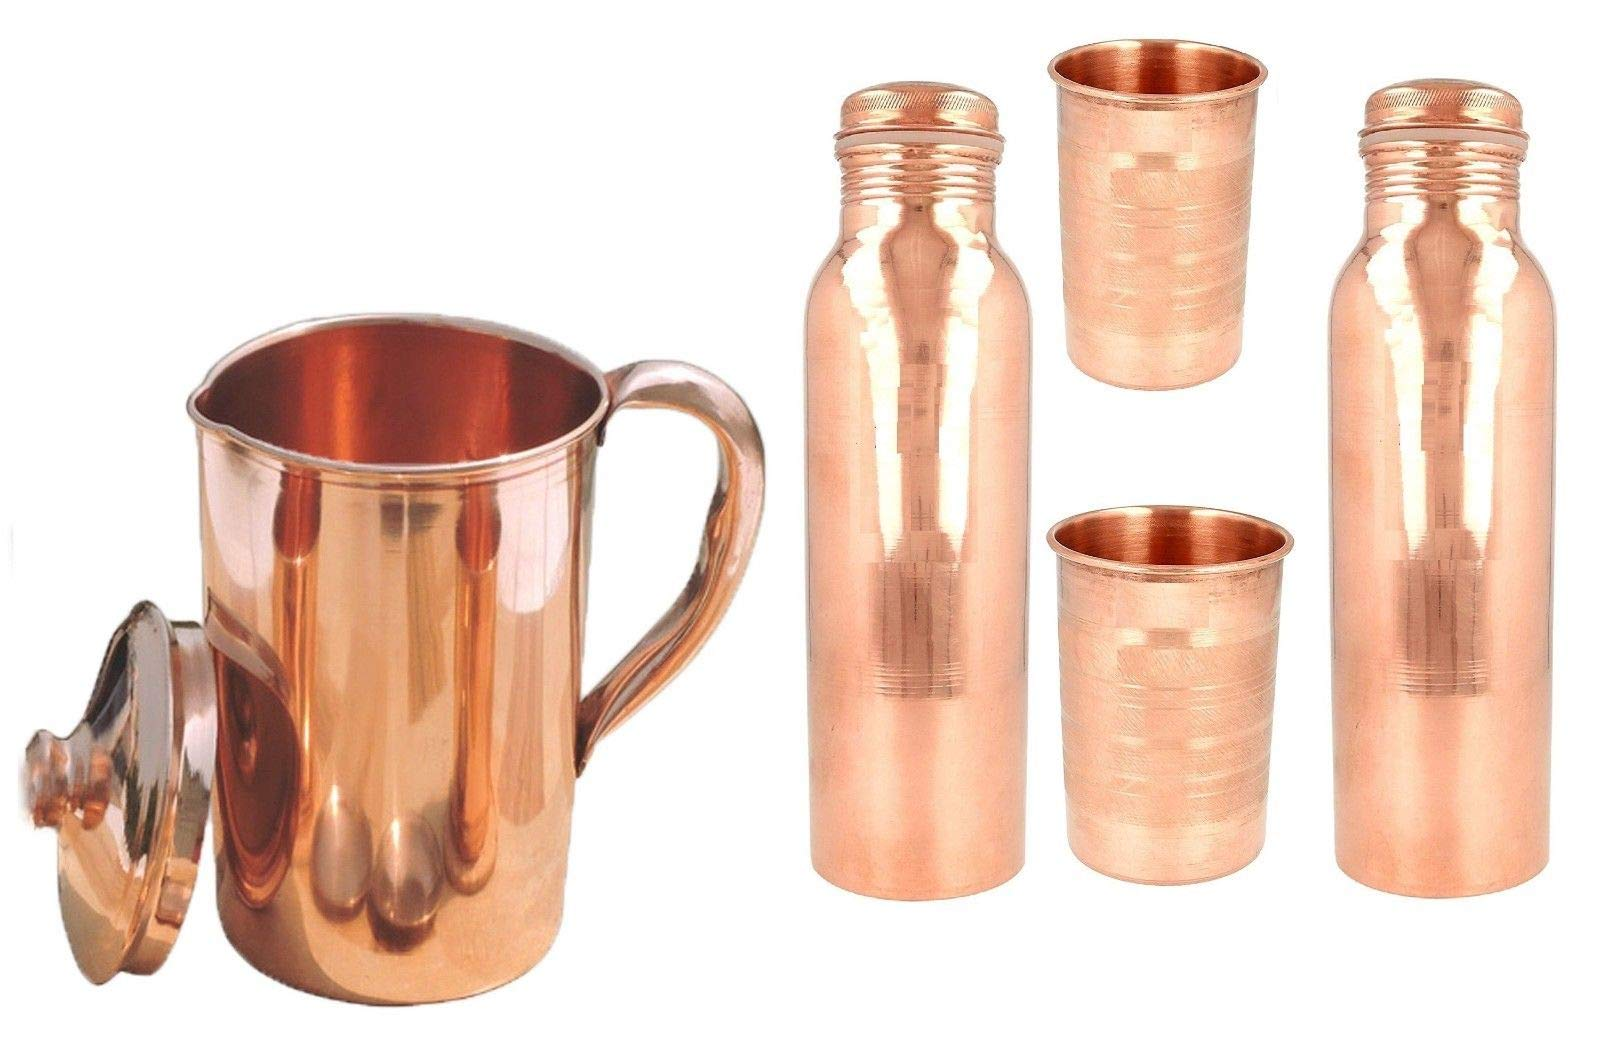 MegaCraft 100% Pure Copper Indian Pure Copper Jug with Leak Proof Bottle Plain Glass Combo for Ayurveda Healing Set.BAS-15